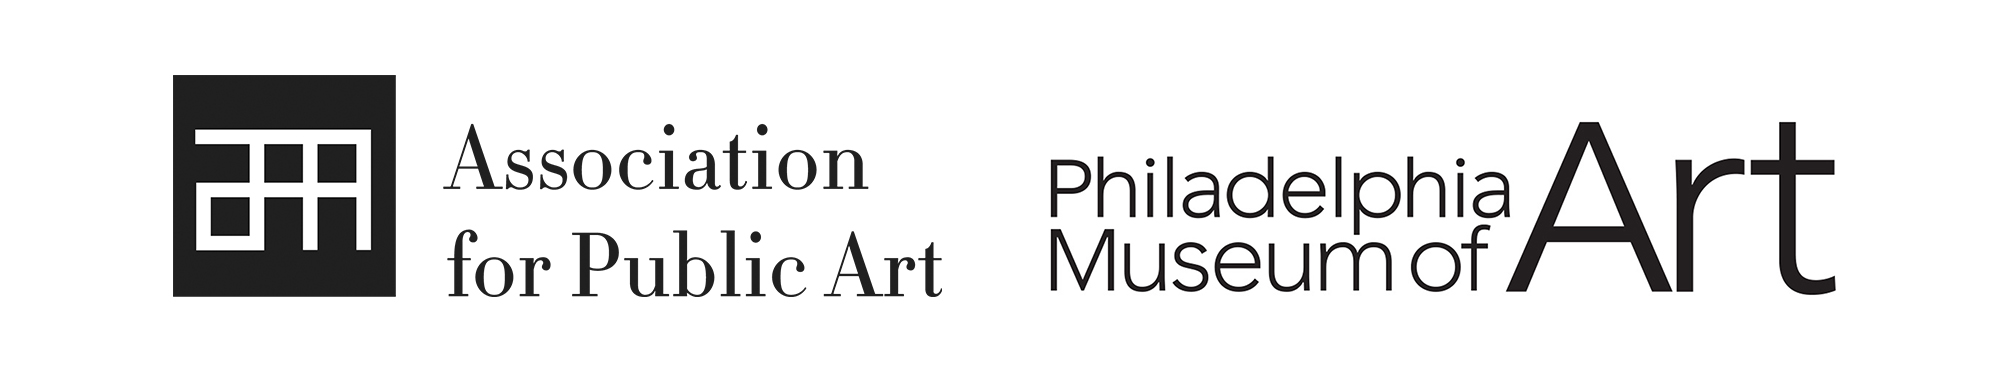 Logos for the Association for Public Art and the Philadelphia Museum of Art